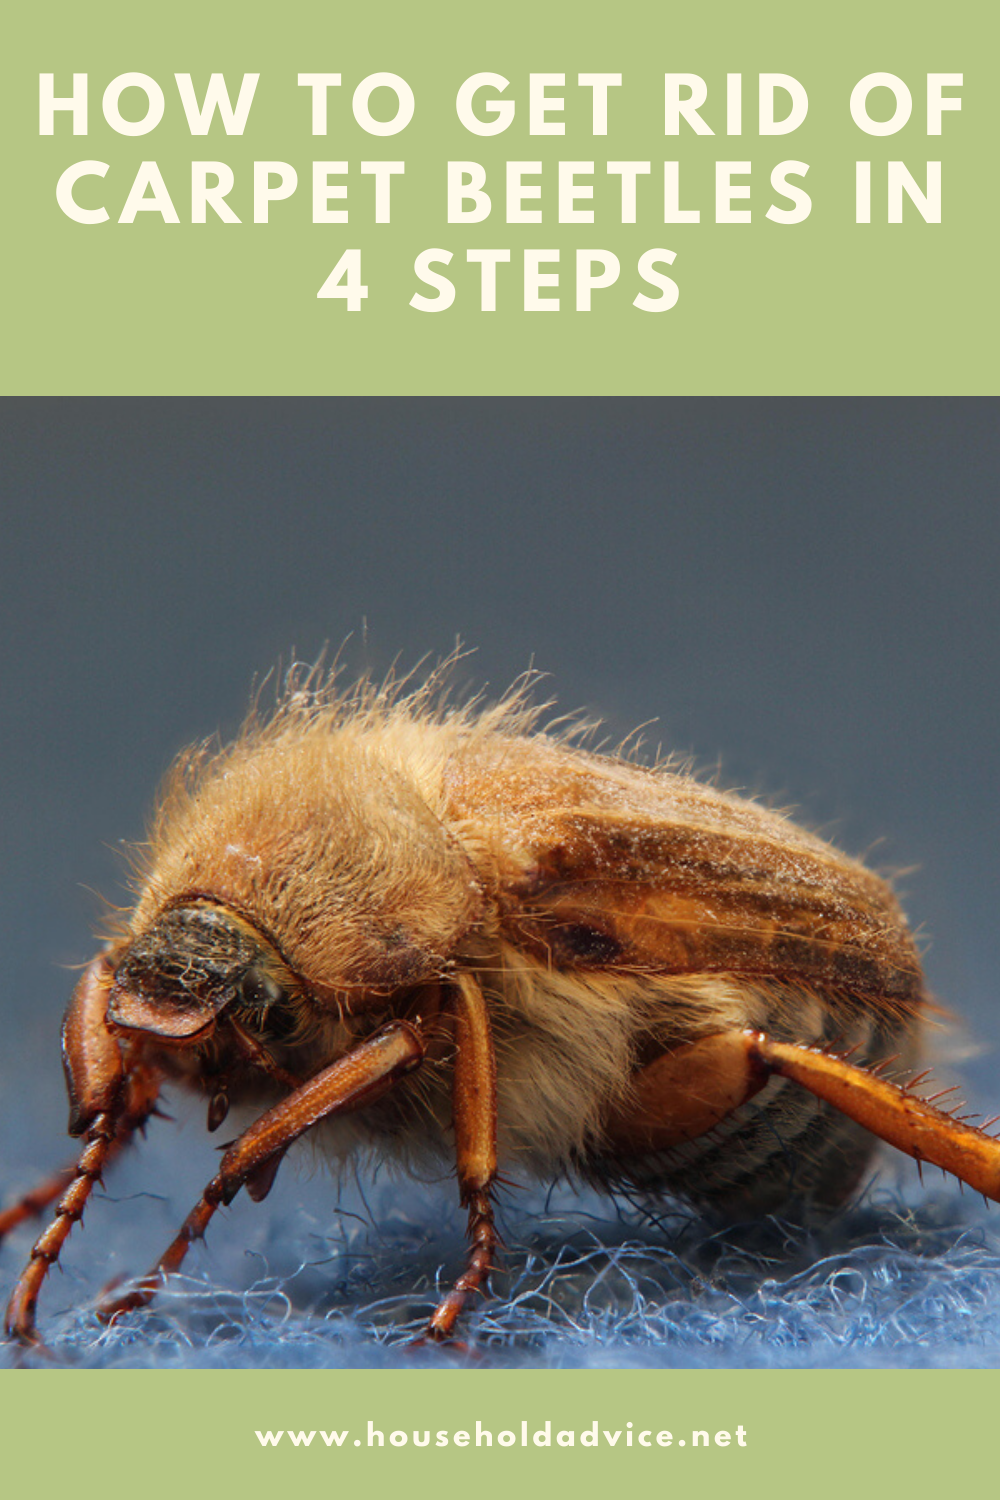 How To Get Rid Of Carpet Beetles Naturally On Your Own Carpet Beetle Spray Carpet Bugs Beetle